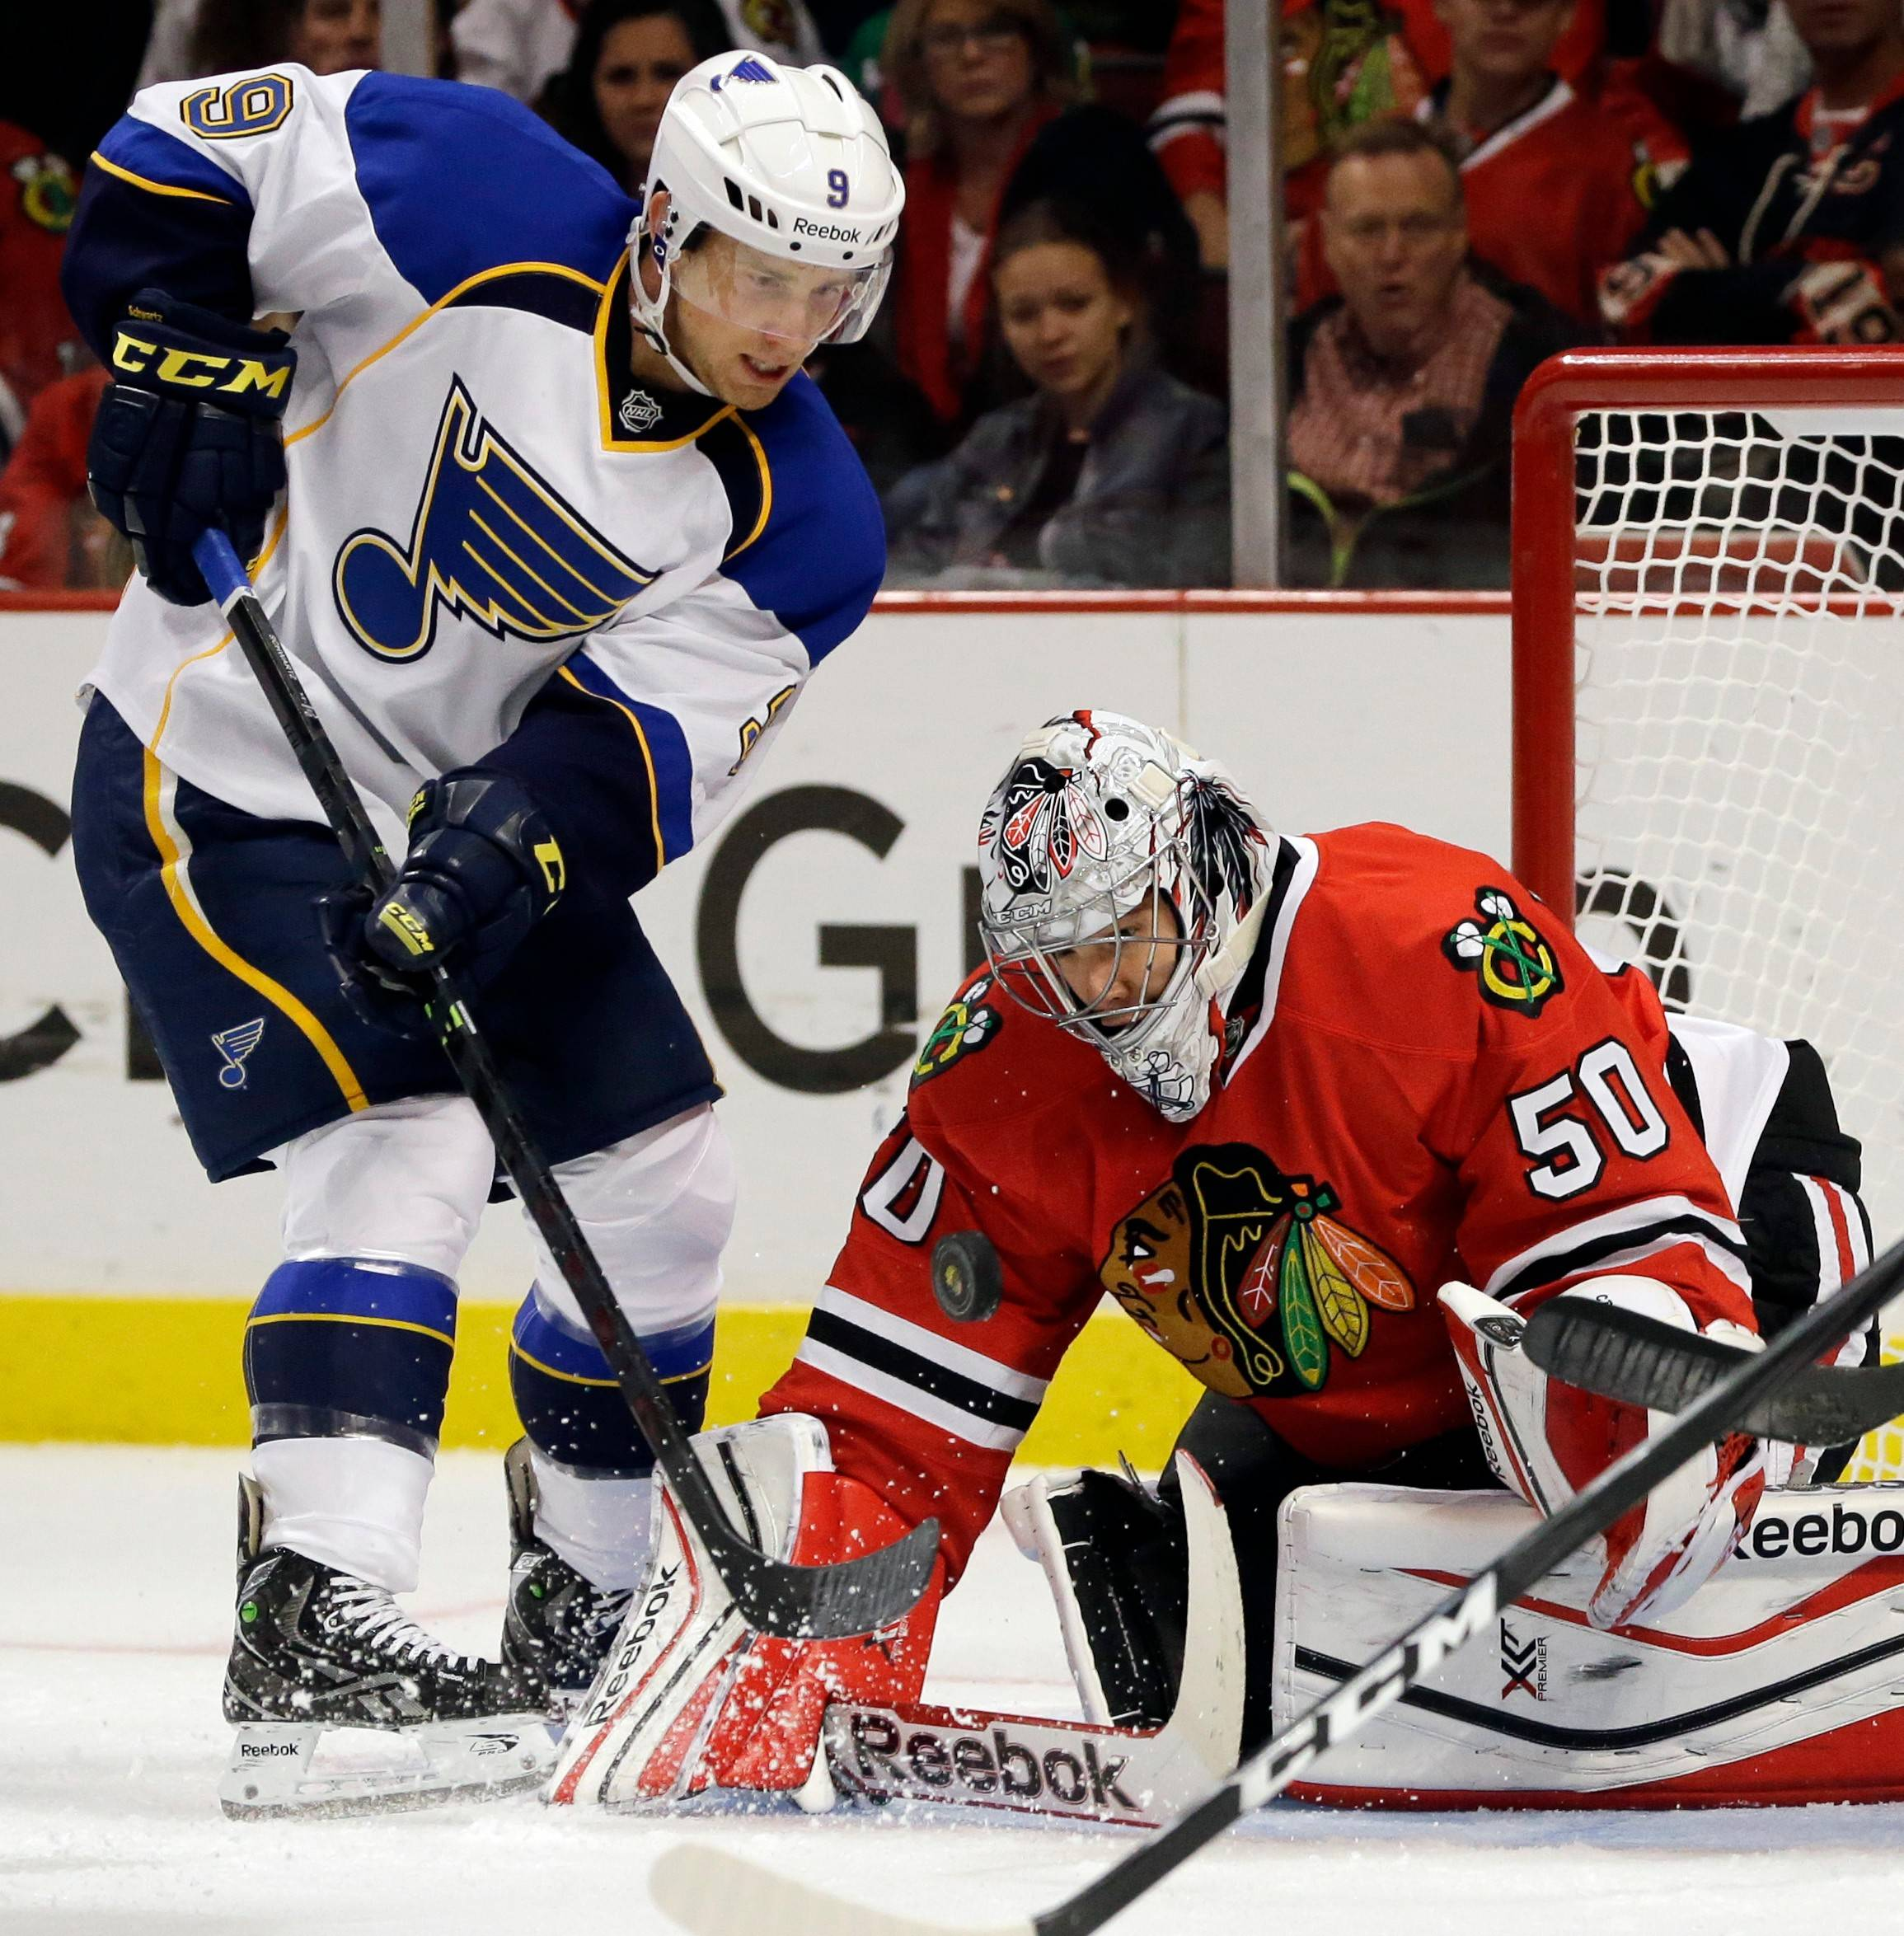 Blackhawks goalie Corey Crawford blocks a shot by the St. Louis Blues' Jaden Schwartz in a game from last October. The Hawks and Blues will face each other in the first round of the playoffs, beginning Thursday.